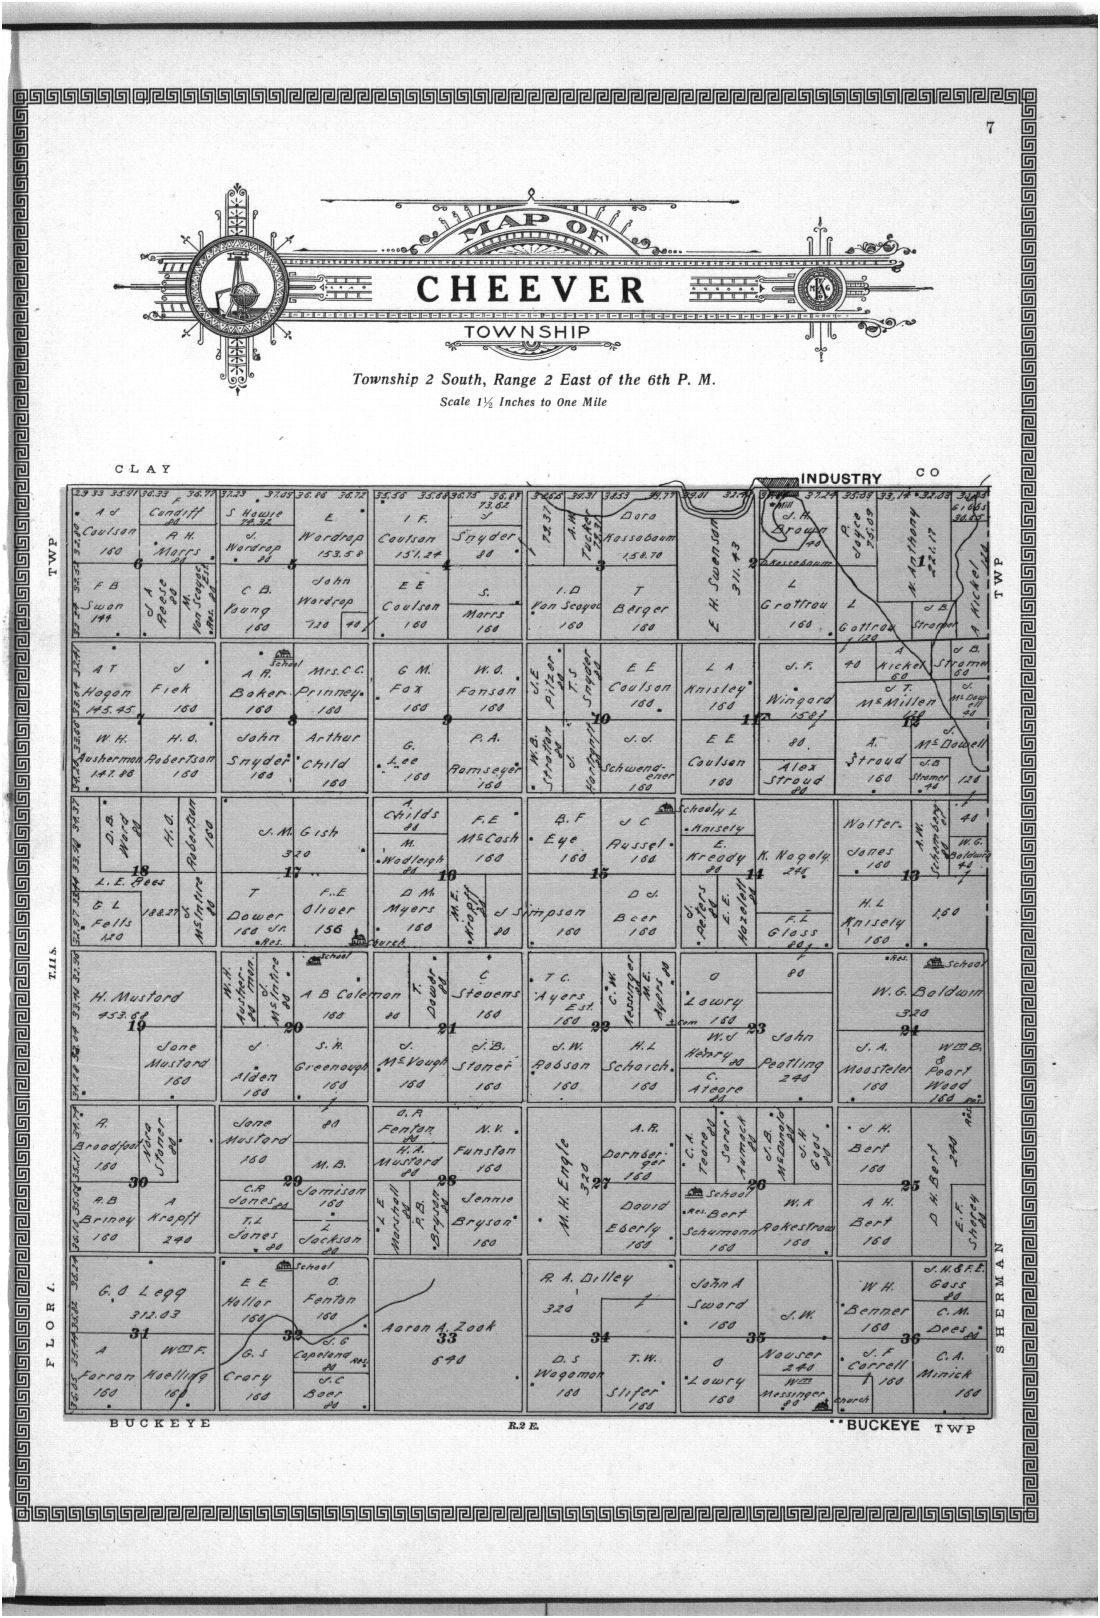 Plat book and complete survey of Dickinson County, Kansas - 7